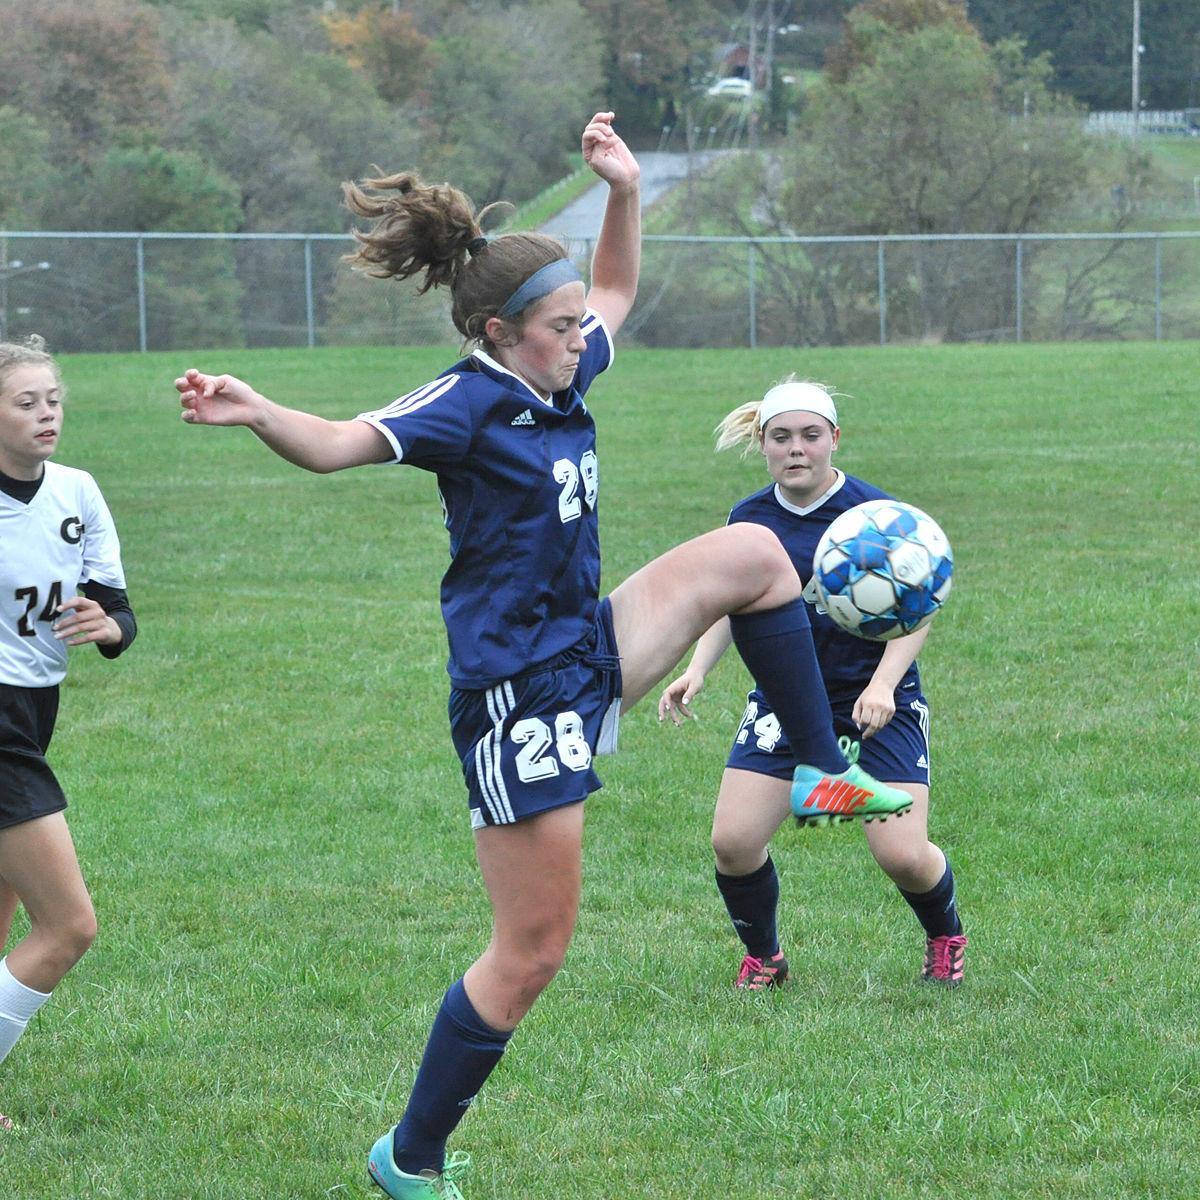 Alayna Haight vs. Curwensville